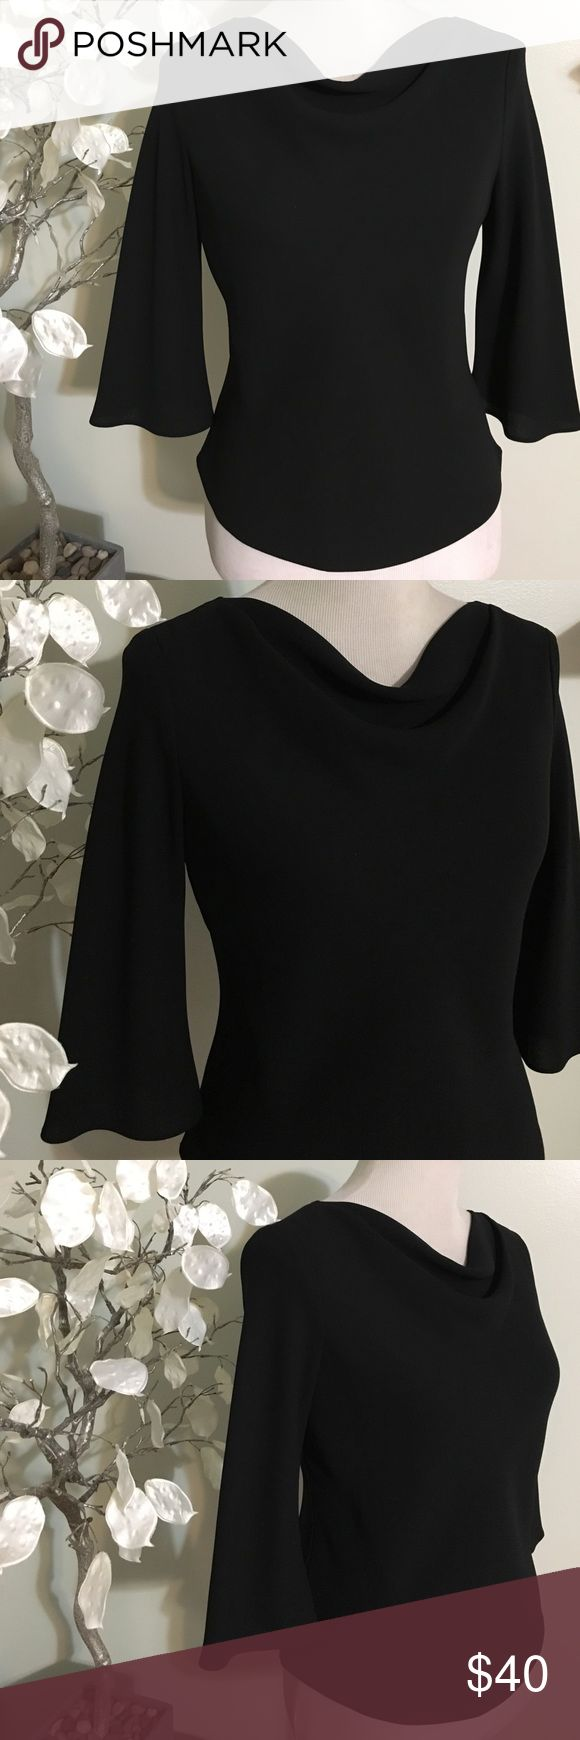 Donna Ricco Black Dress Capped Sleeve